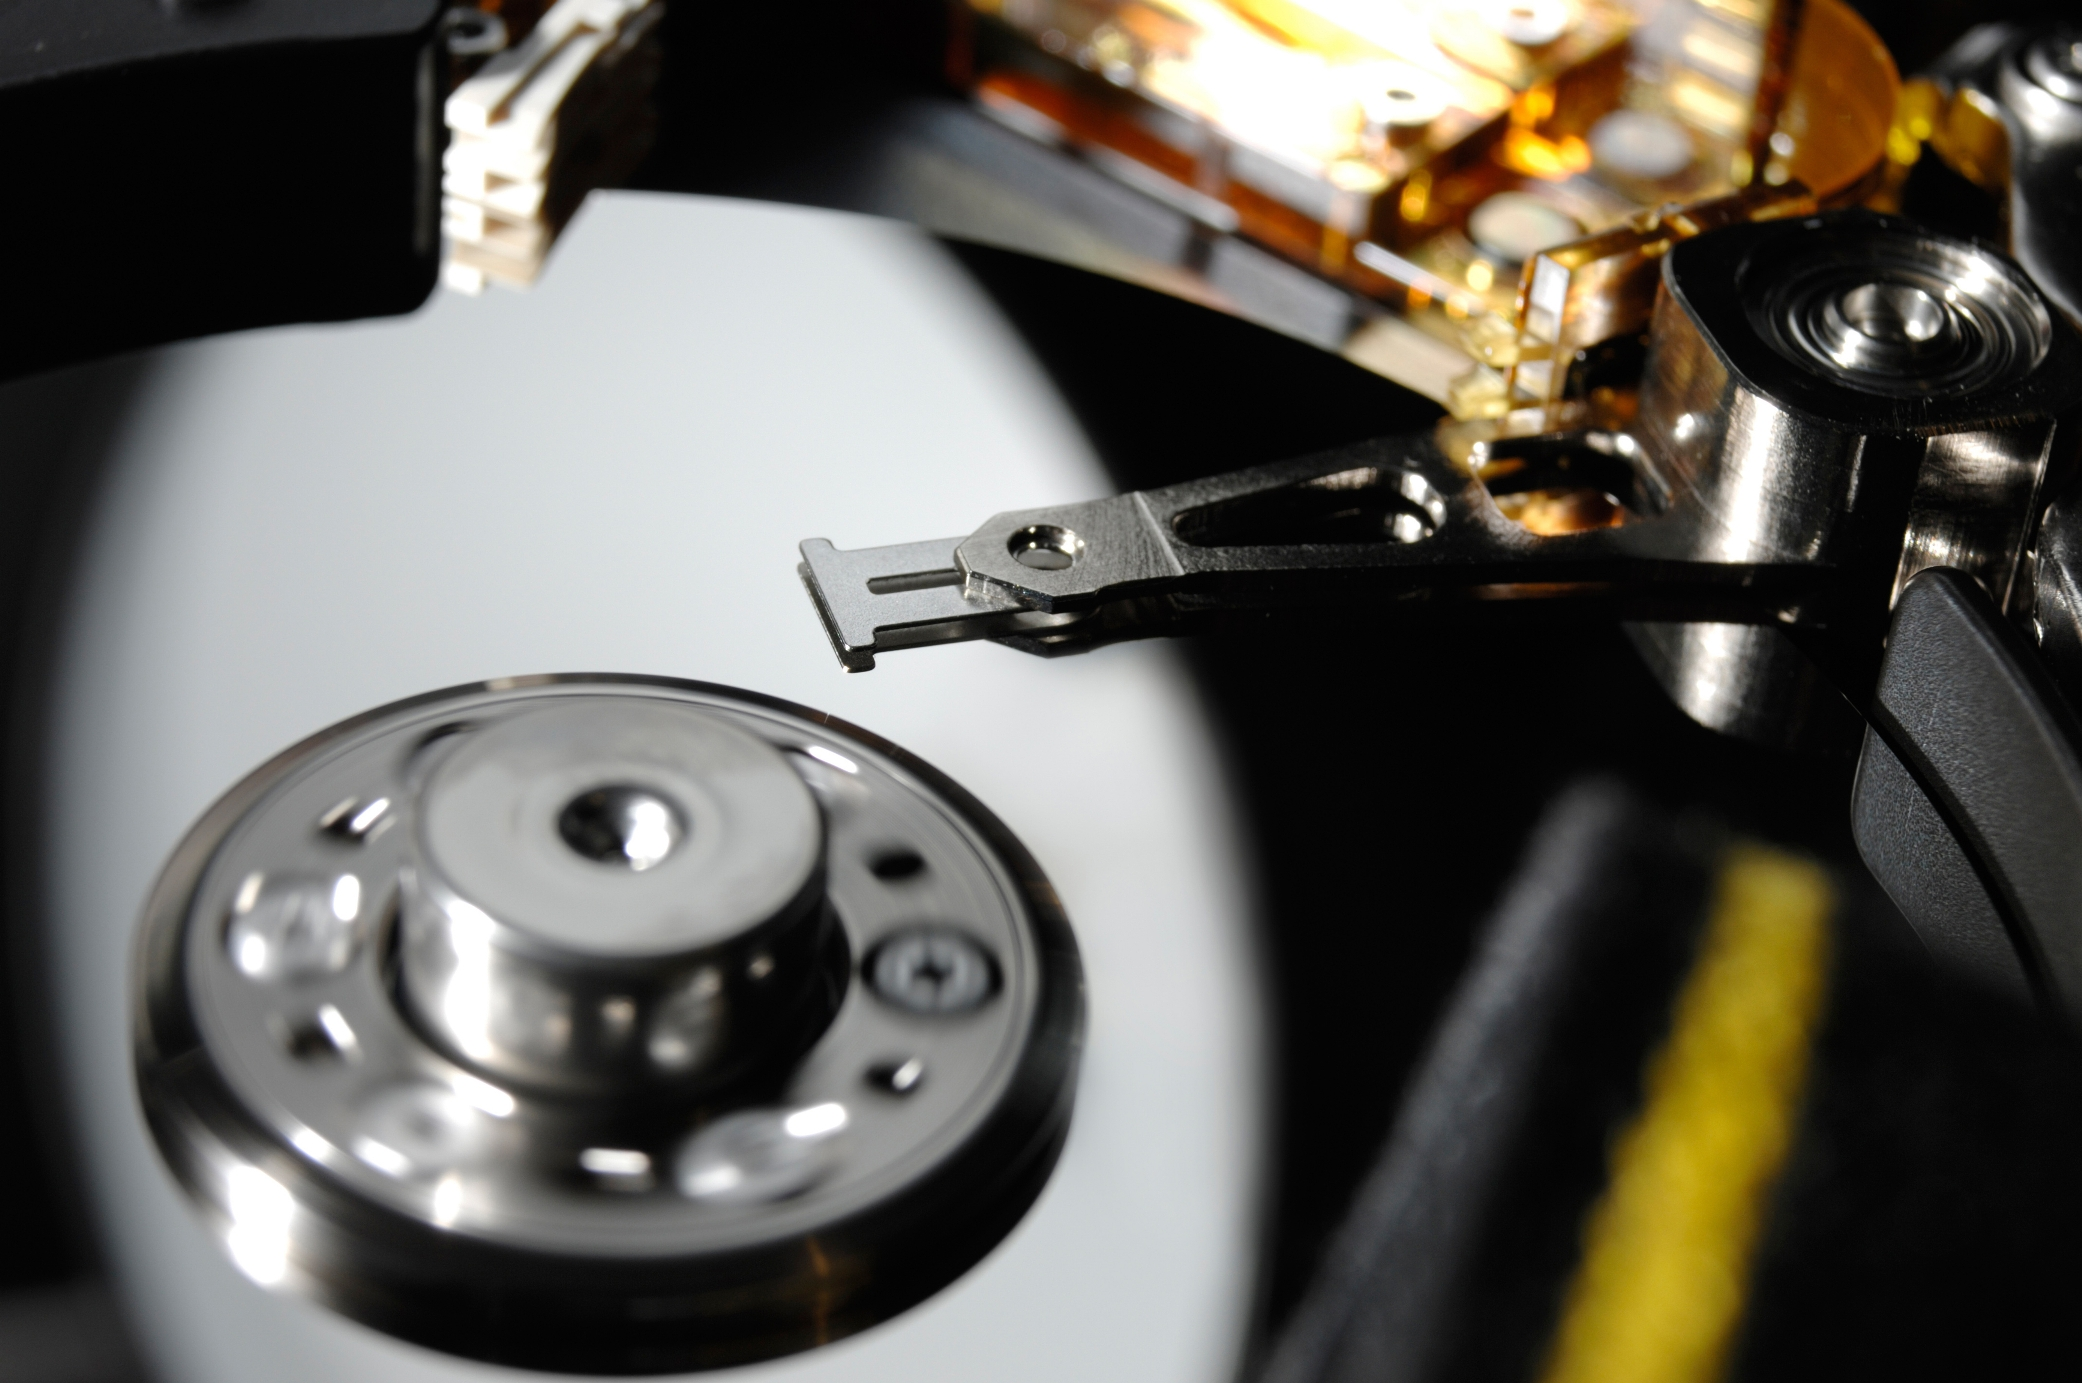 Disk drive manufacturing